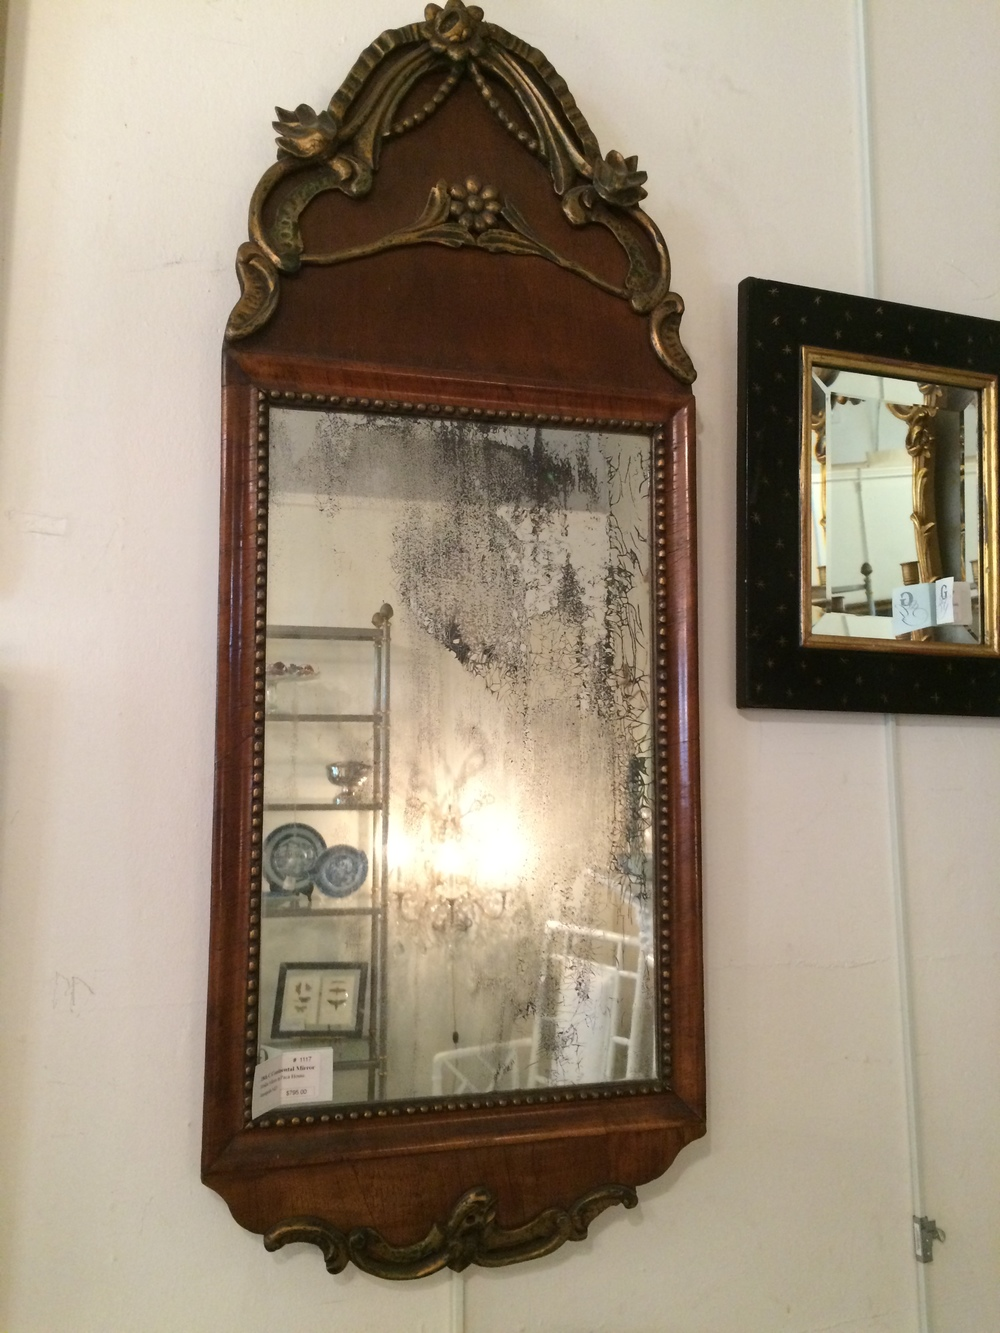 18th century continental mirror (similar piece in Paca House, Annapolis)